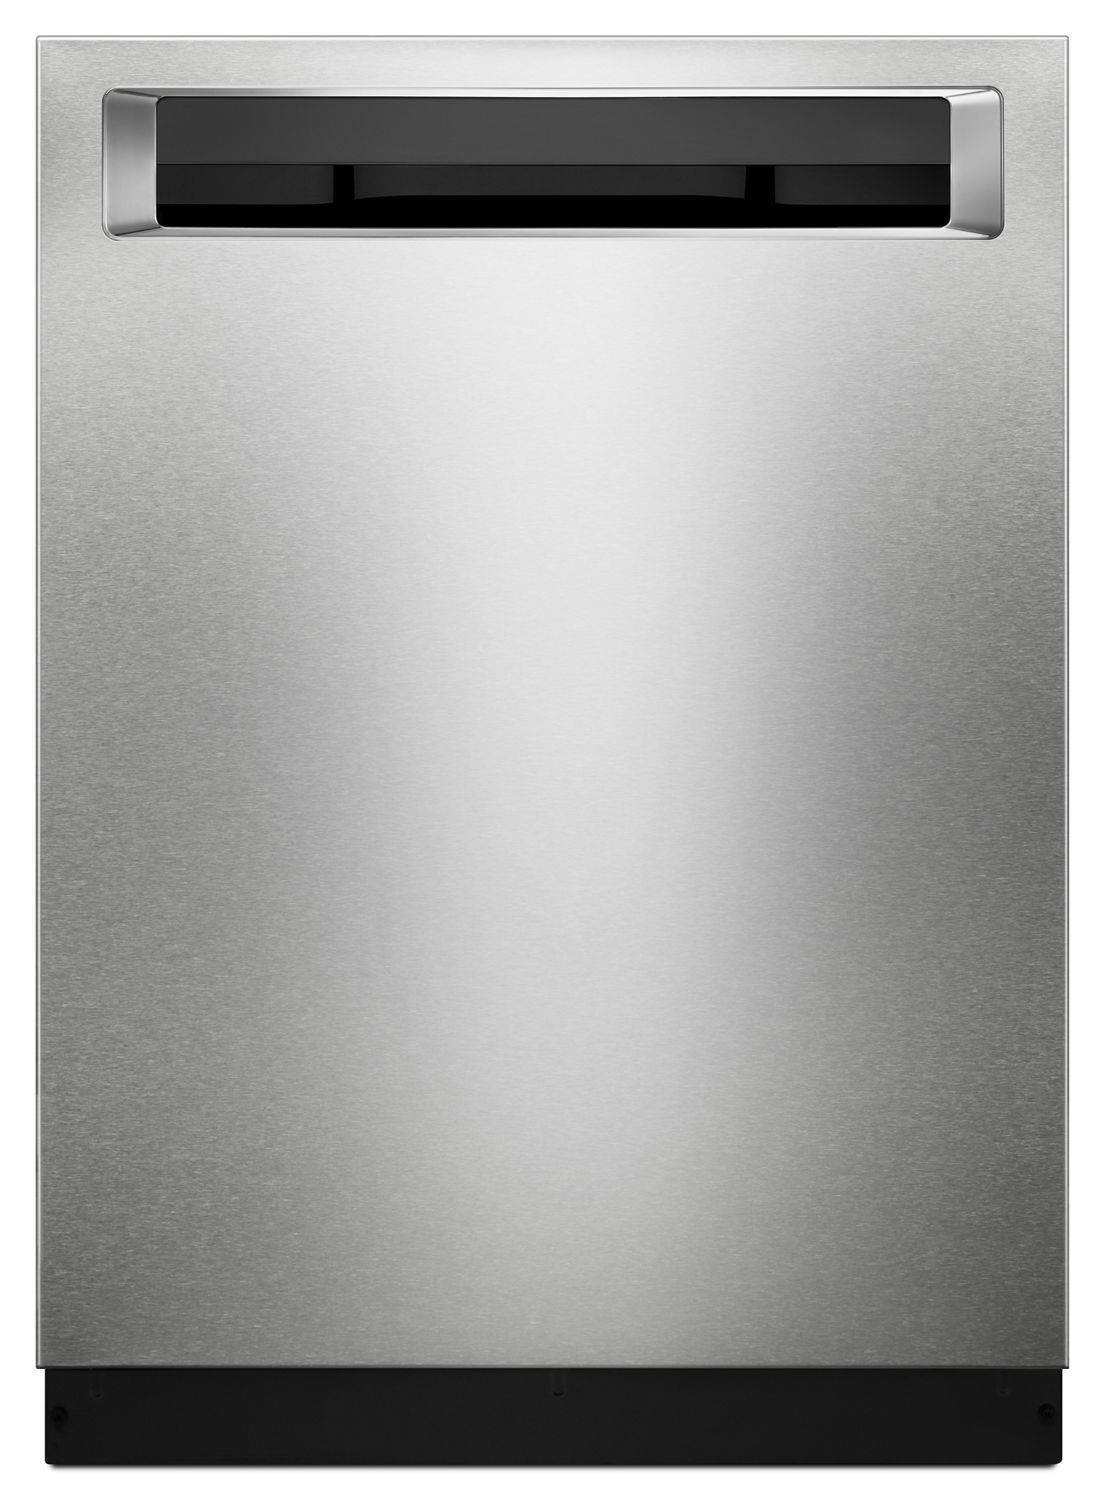 Kdpm354gps Kitchenaid 44 Dba Dishwashers With Clean Water Wash System And Printshield Finish Pocket Handle Stainless Steel With Printshield Finish Stainless Steel With Printshield Tm Finish Manuel Joseph Appliance Center,Keeping Up With The Joneses Examples